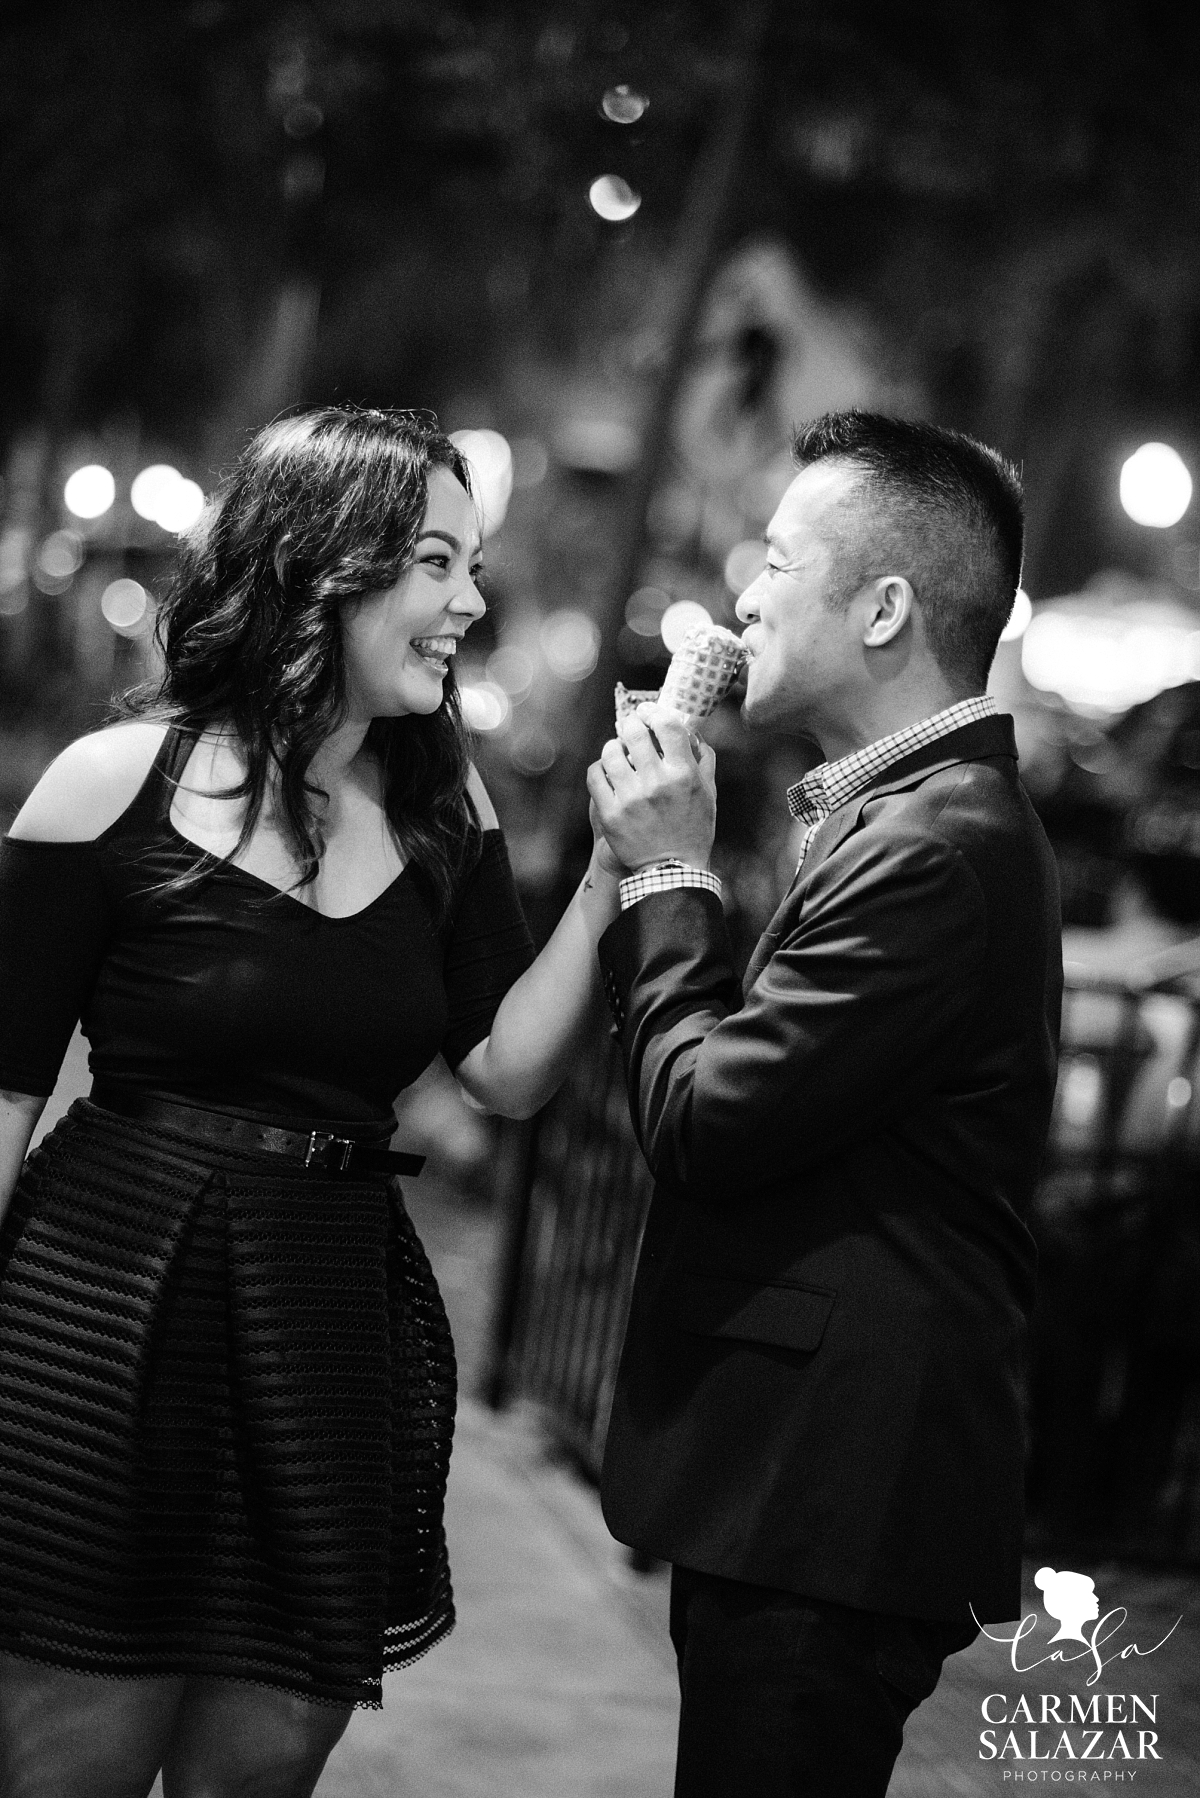 Fun and playful engagement photography ideas - Carmen Salazar